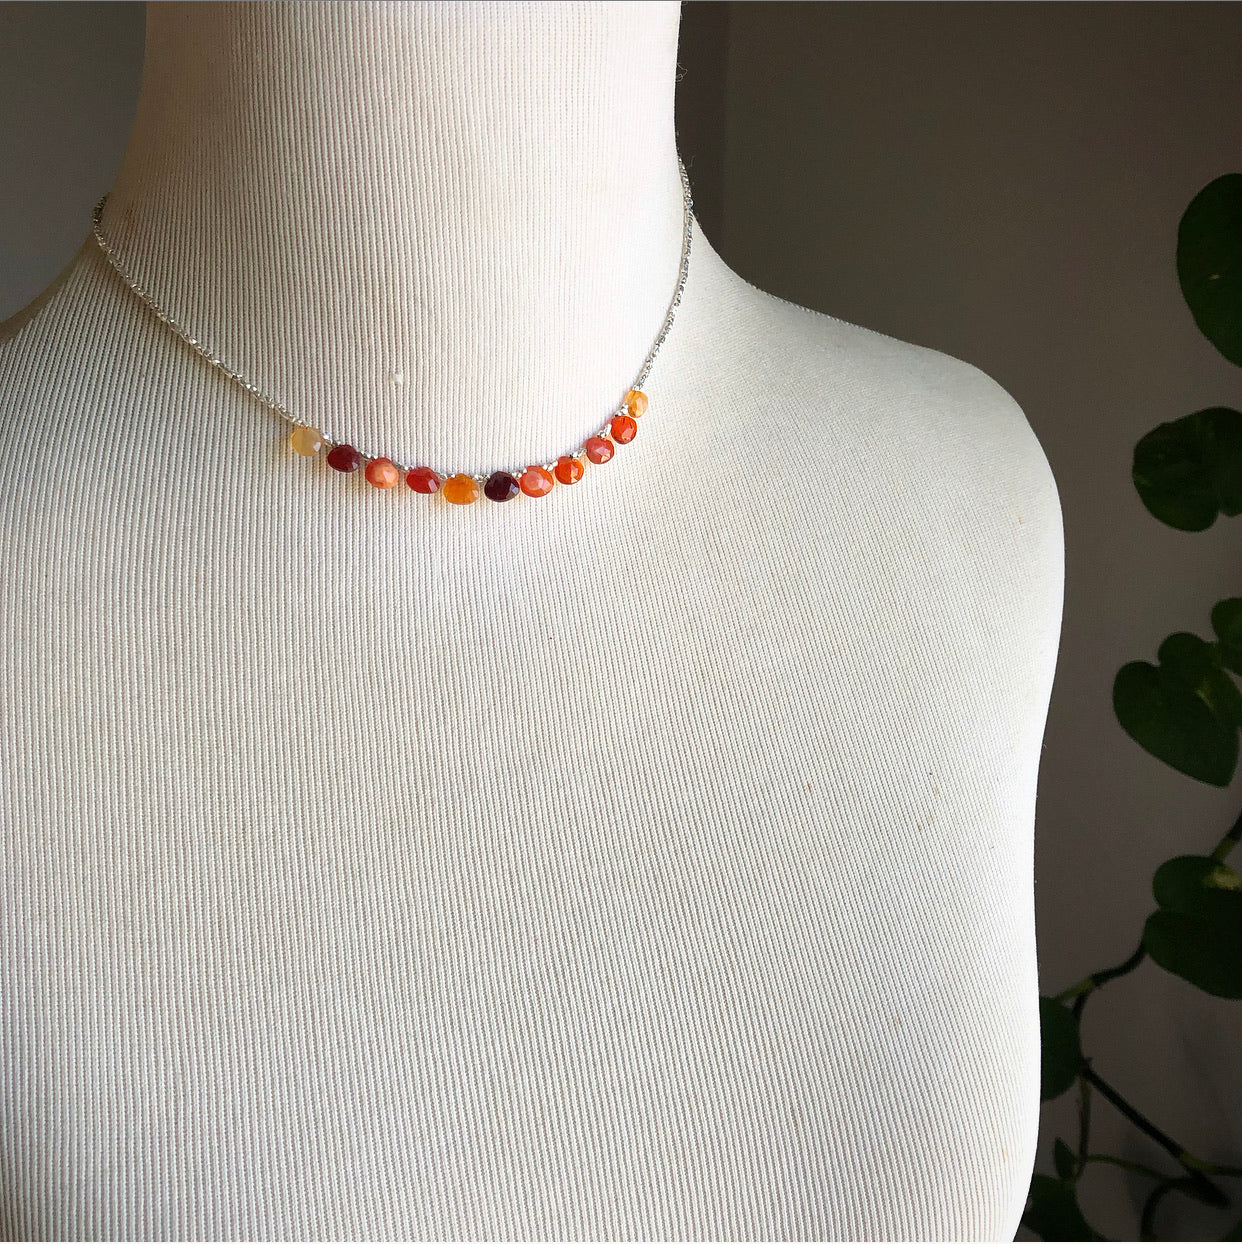 Mexican Fire Opal Necklace in Silver (I)